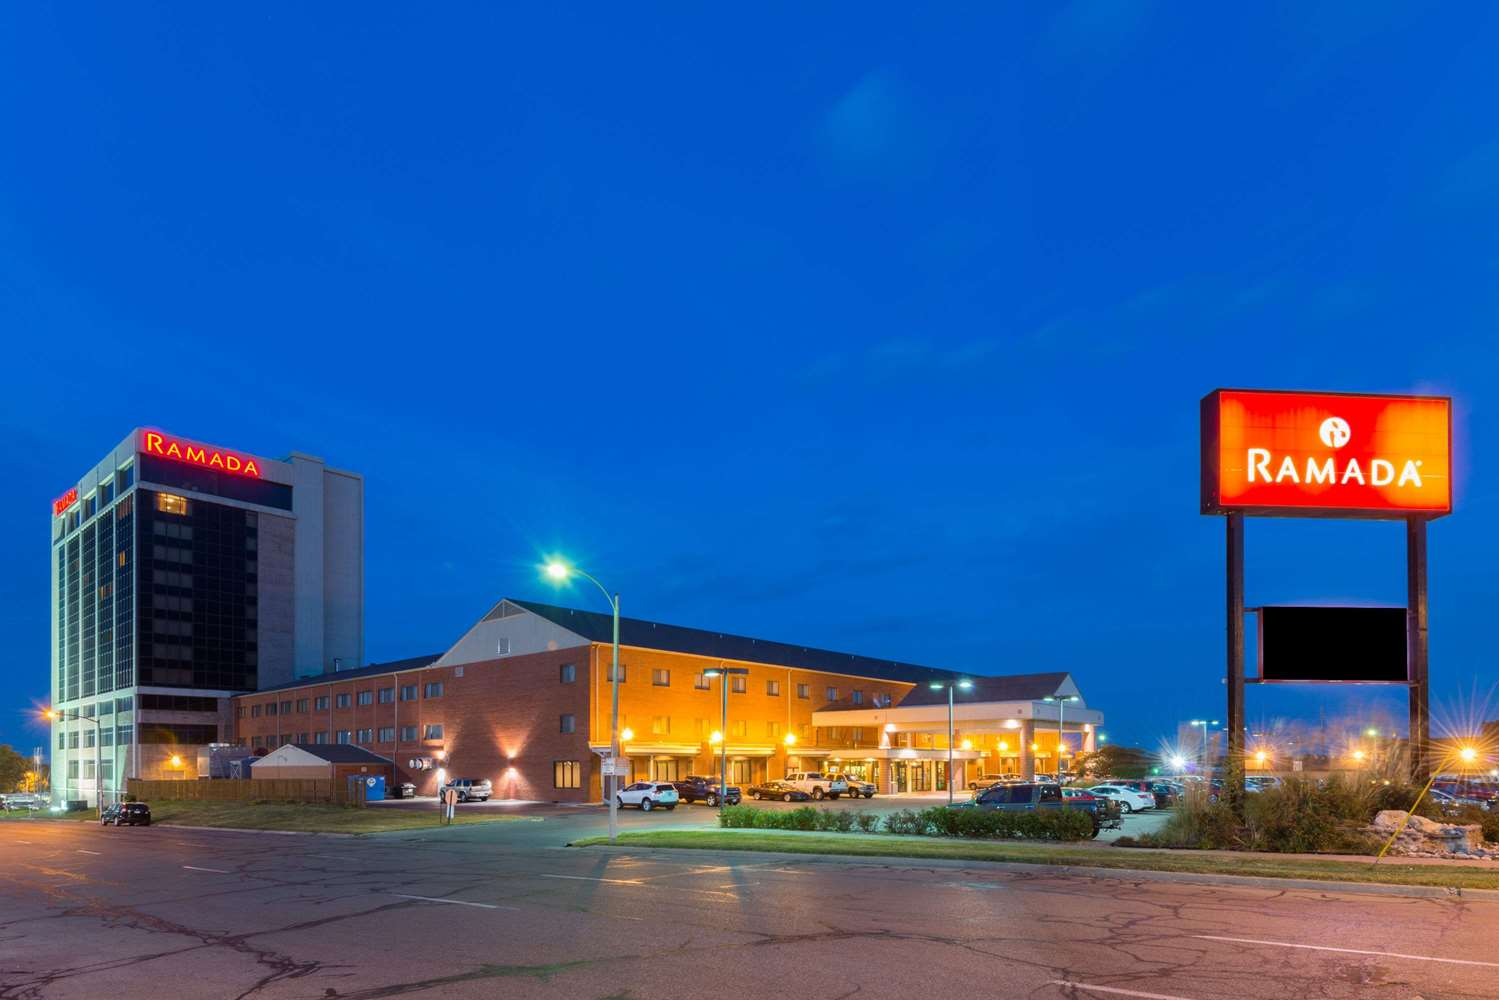 Exterior view - Ramada Inn Convention Center Downtown Topeka